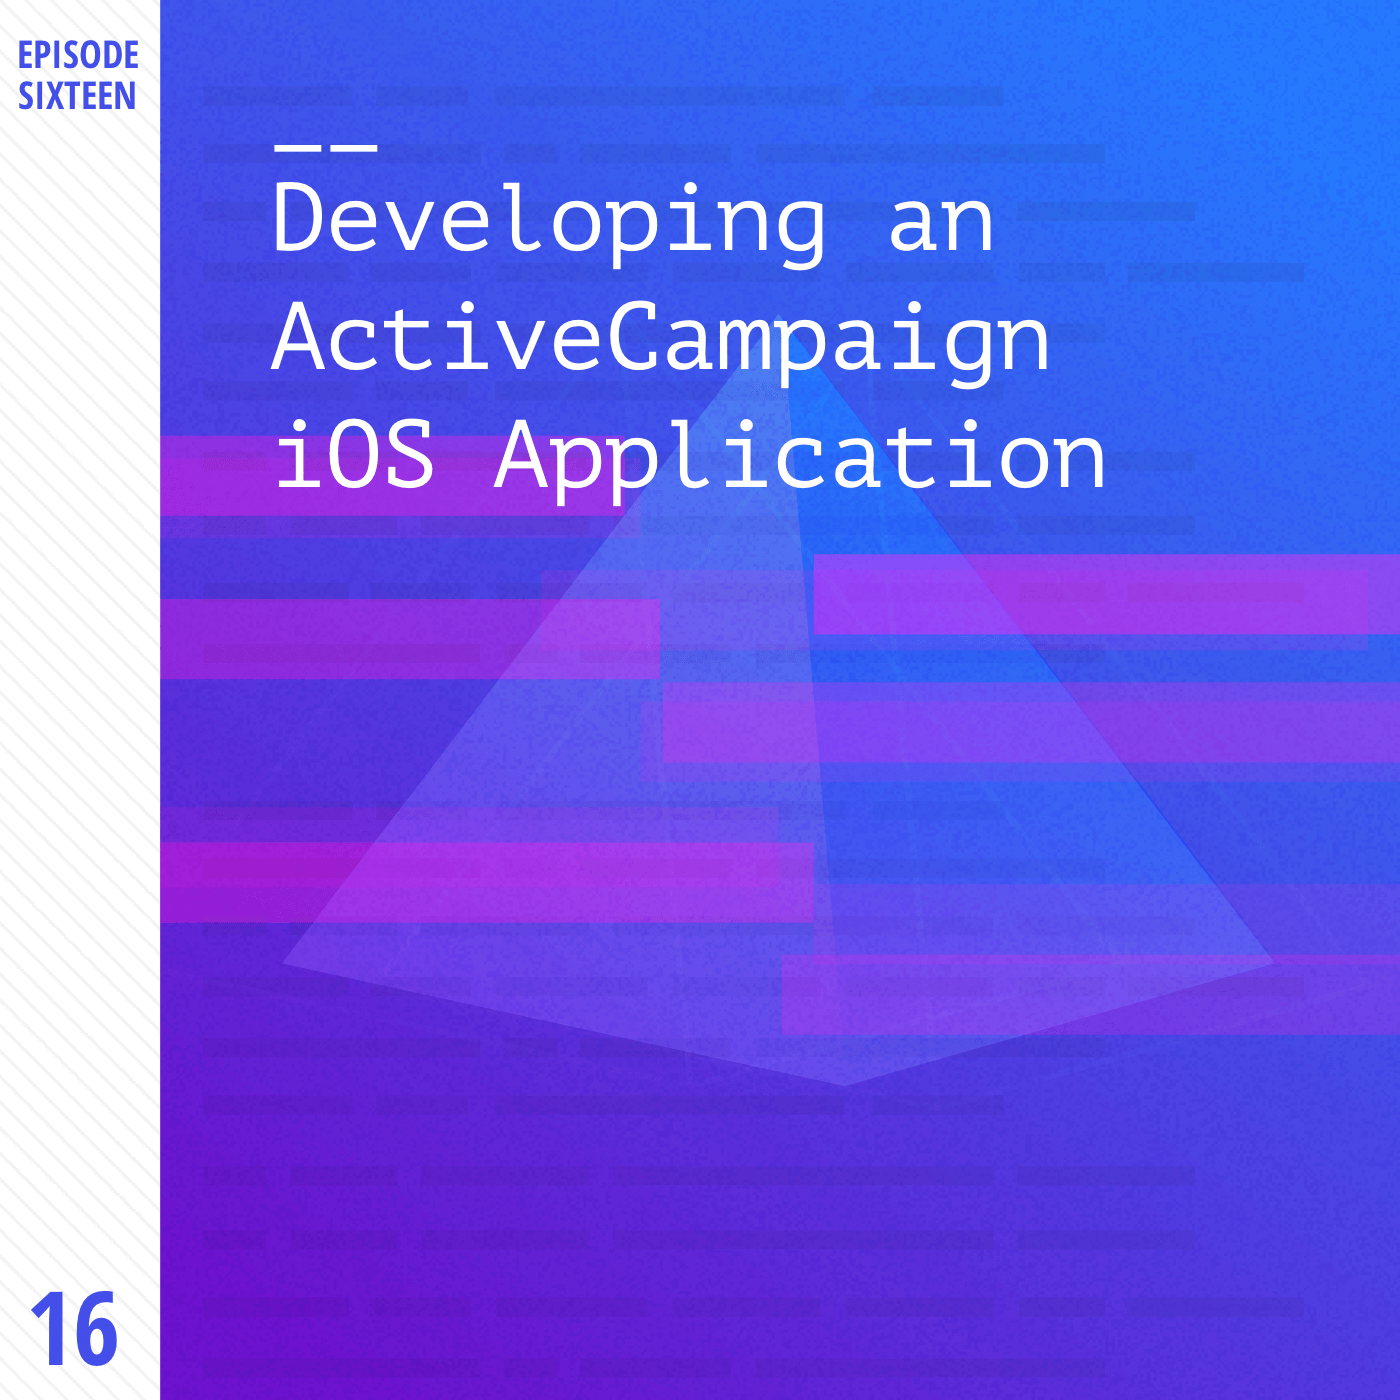 Episode 16 Developing An ActiveCampaign iOS App with Weien Wang